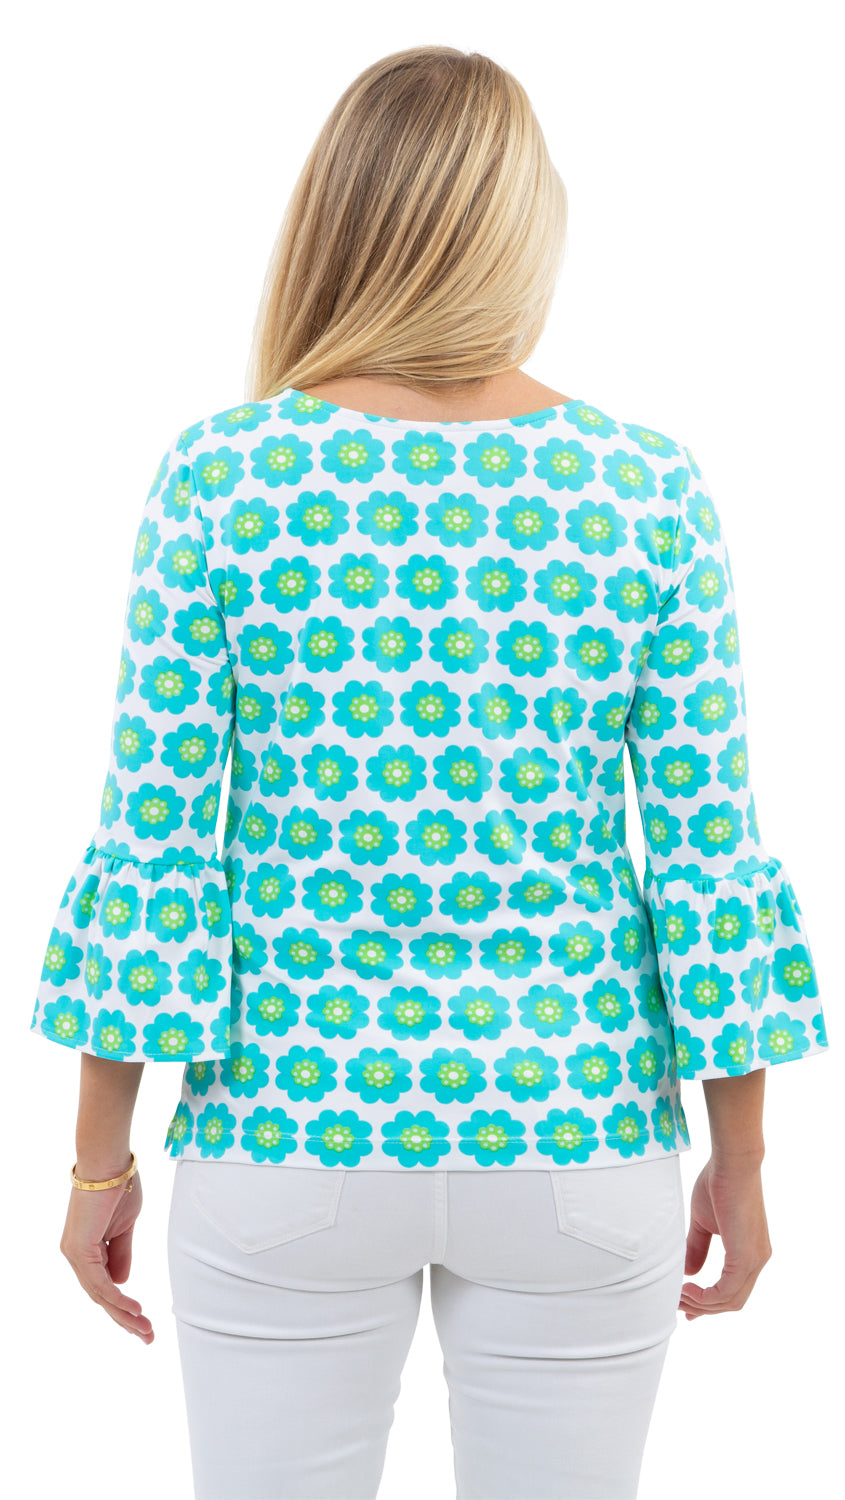 Haley Top - Pocket Full of Daisies Blue/Green